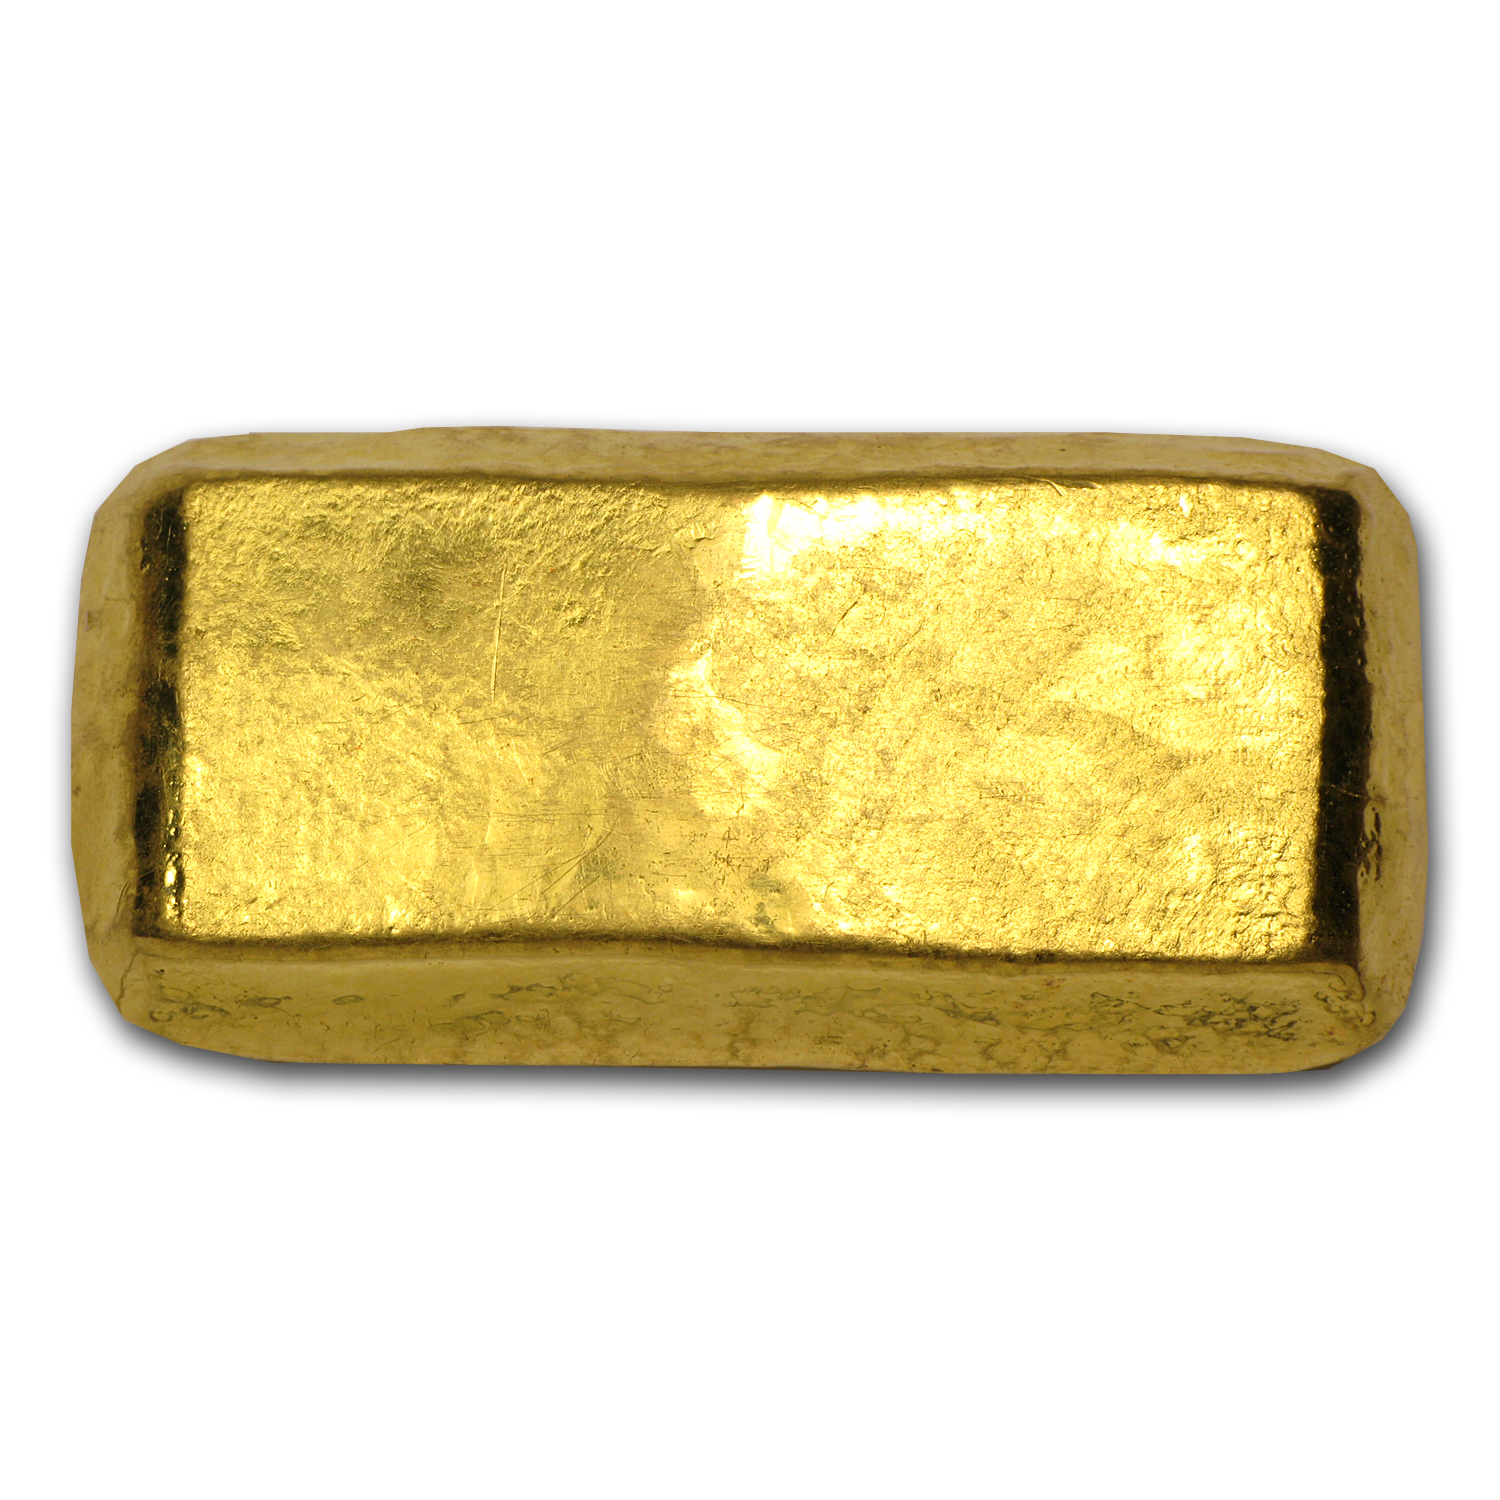 5 oz Gold Bar - Phoenix Precious Metals Ltd.